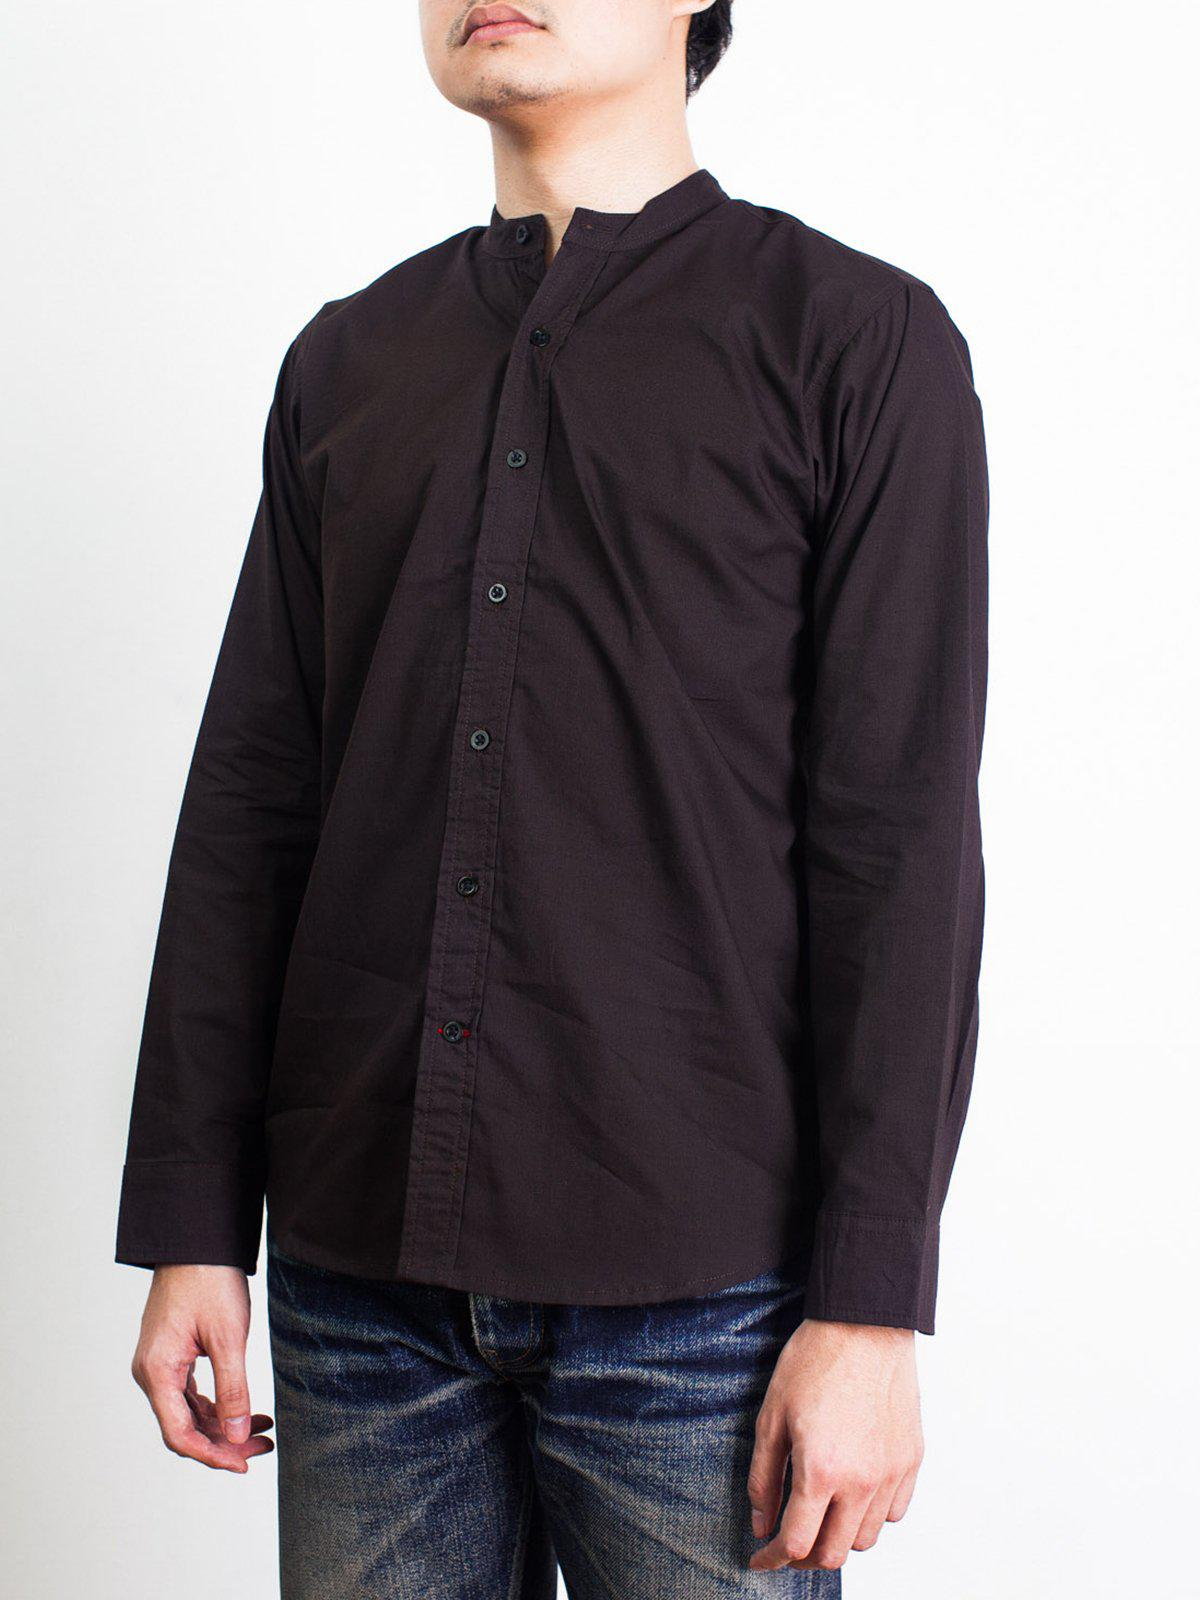 Qutn Band Collar LS Brown Poplin - MORE by Morello Indonesia